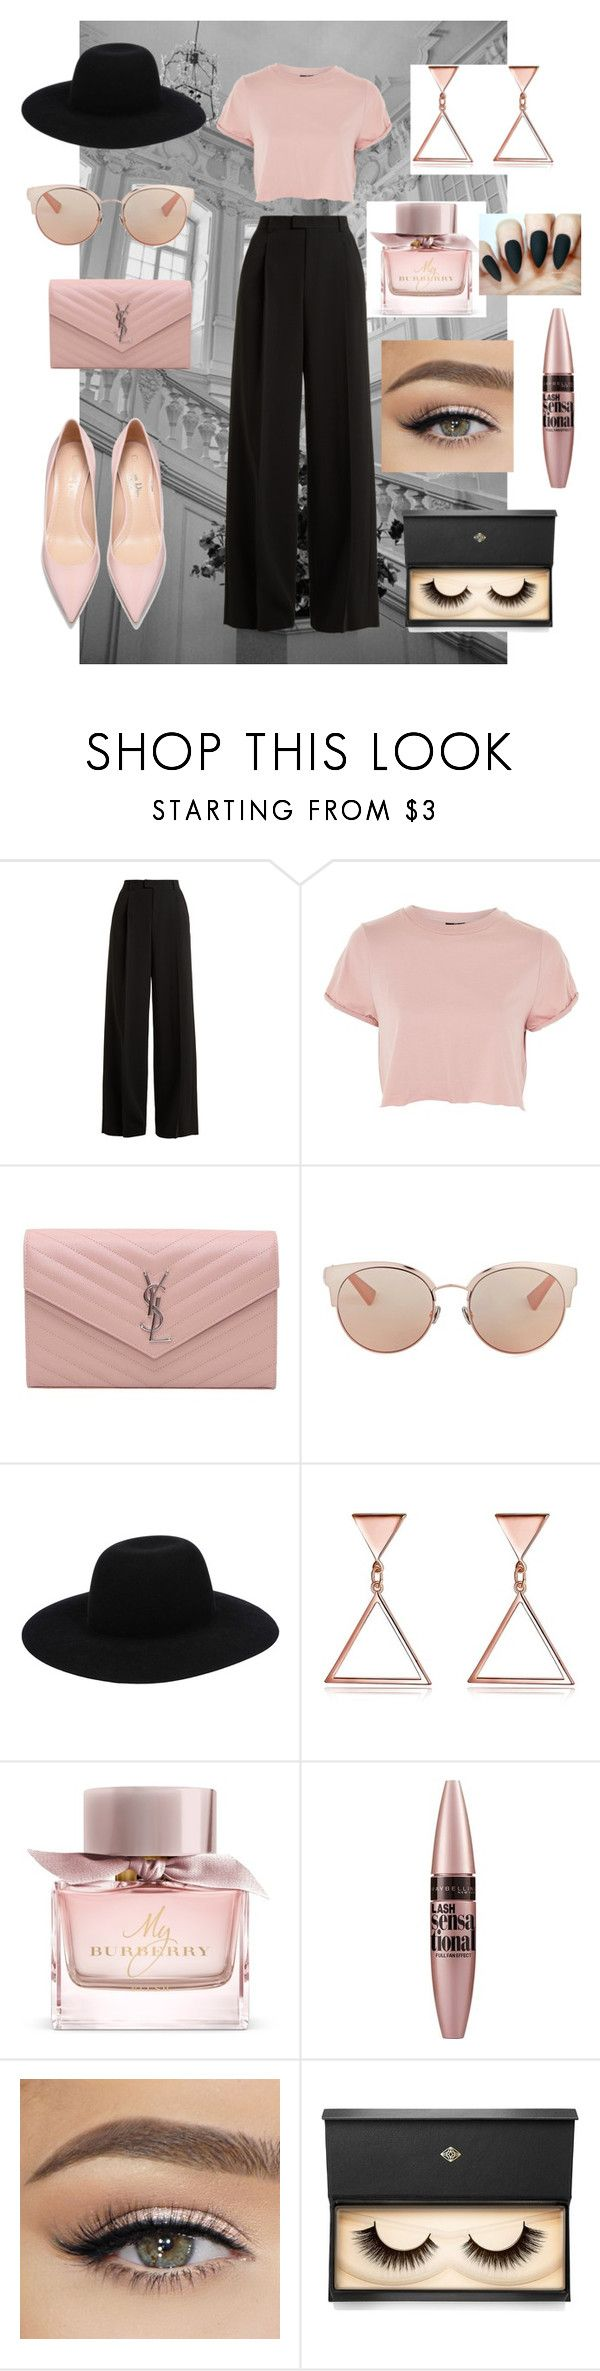 """""""Untitled #96"""" by unicorn234fan ❤ liked on Polyvore featuring RED Valentino, Topshop, Yves Saint Laurent, Christian Dior, Off-White, Burberry, Maybelline and Lash Star Beauty"""